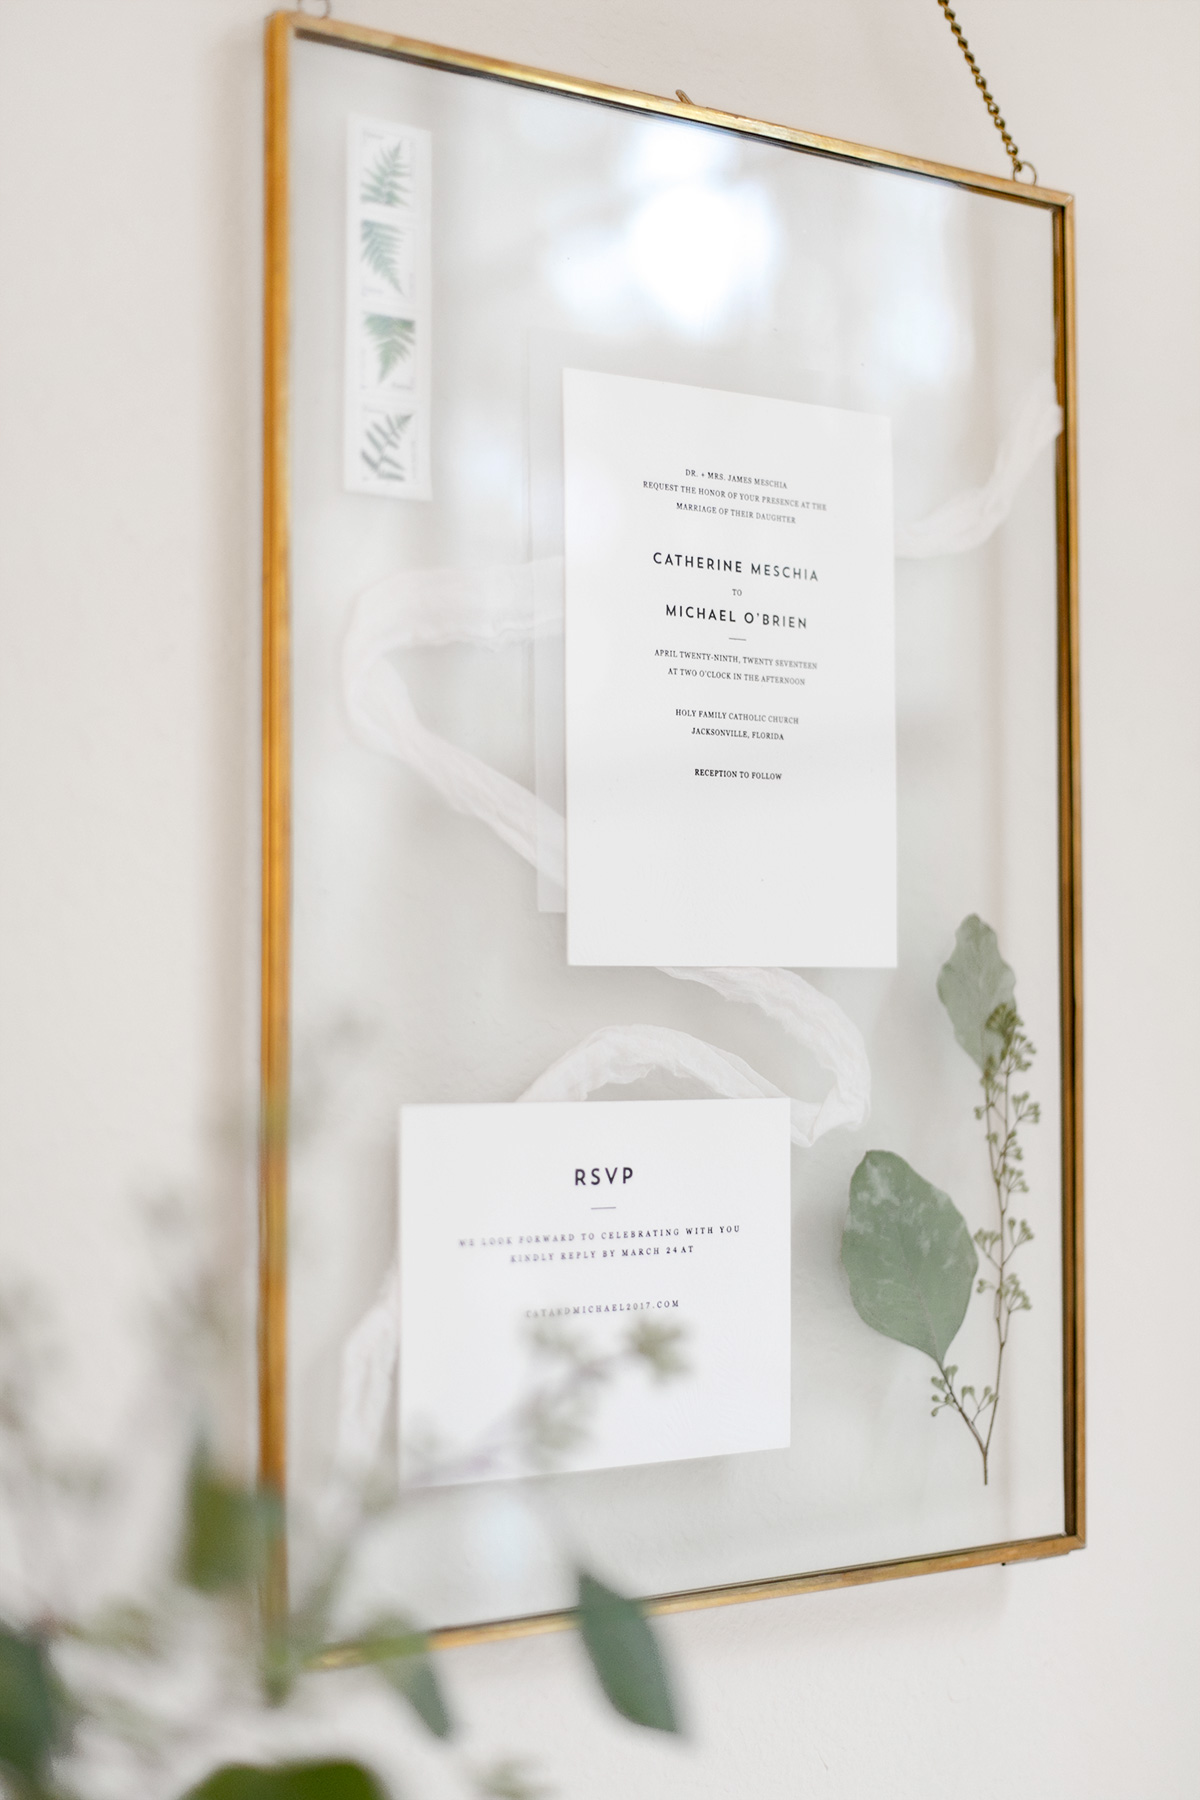 Wedding Invitations Gifts: Valentine's Day Gift Idea, Framed Wedding Invitations